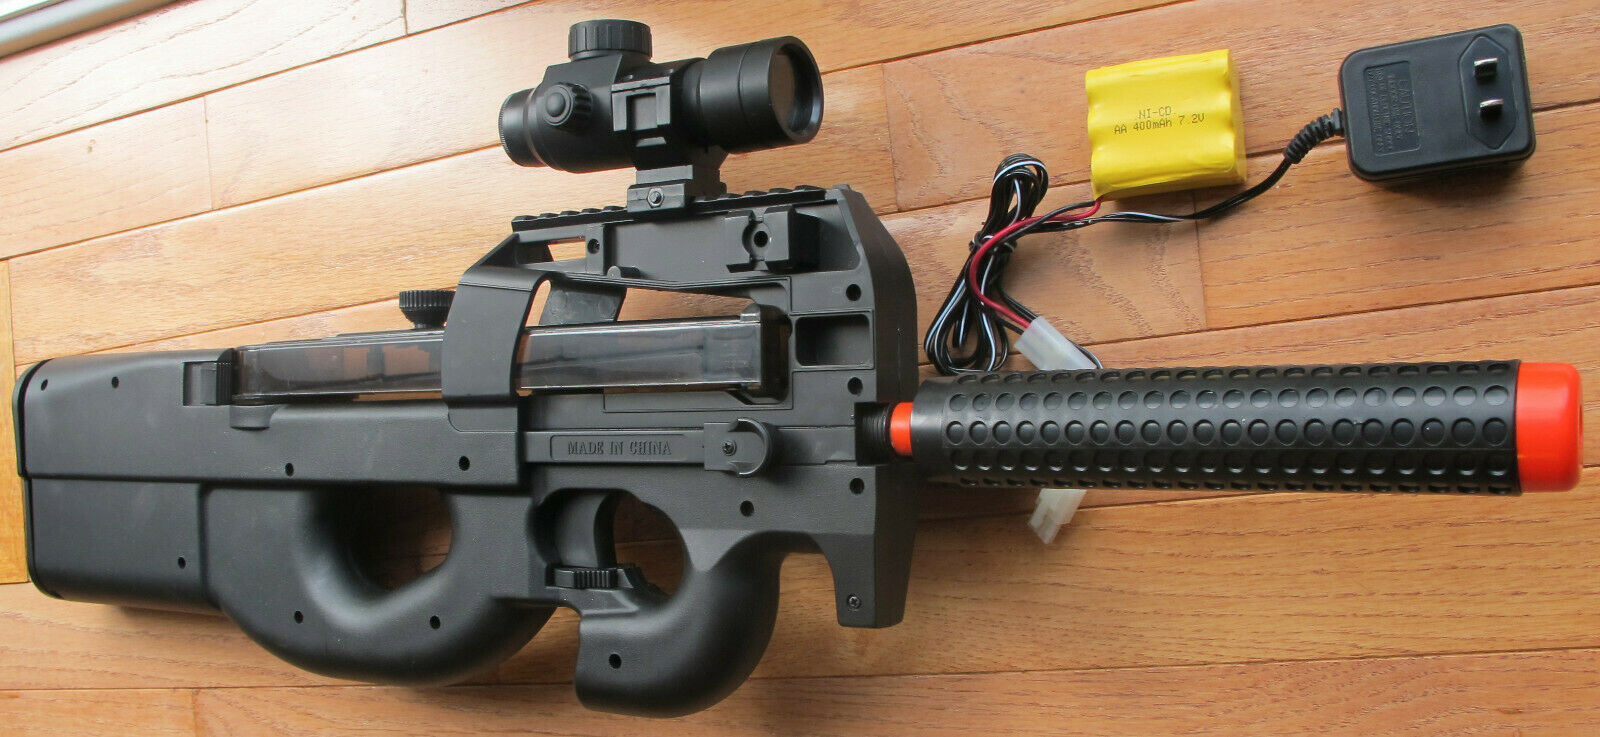 P90 Style Electric Airsoft Gun W Red Dot Scope 1000 Bbs Shoot Up To 240 Fps For Sale Online Ebay